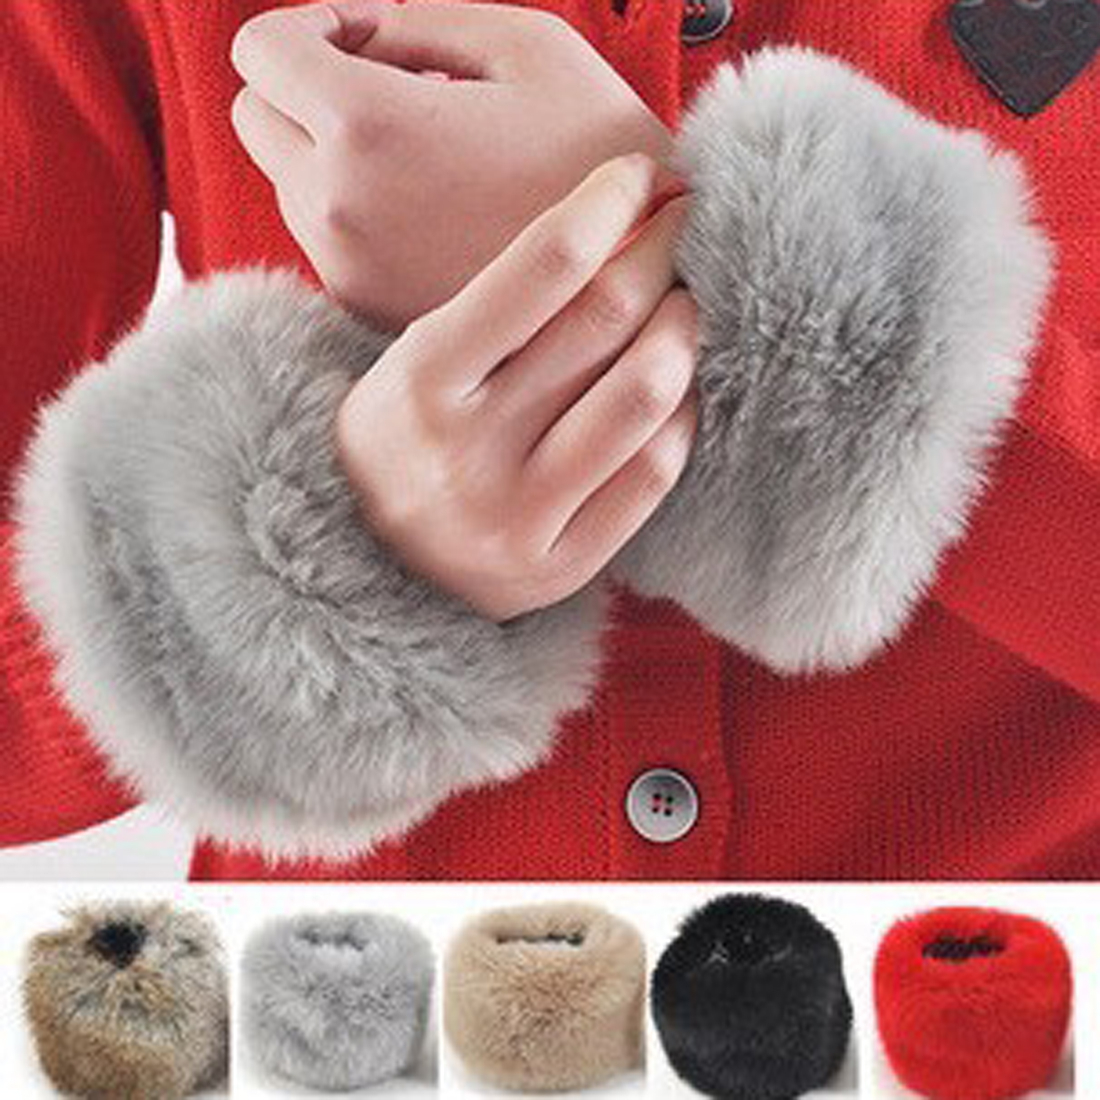 1 Pair Women Fashion Winter Warm Faux Fur Elastic Wrist Slap On Cuffs Ladies Solid Color Arm Warmer Plush Wrist Protector Winter